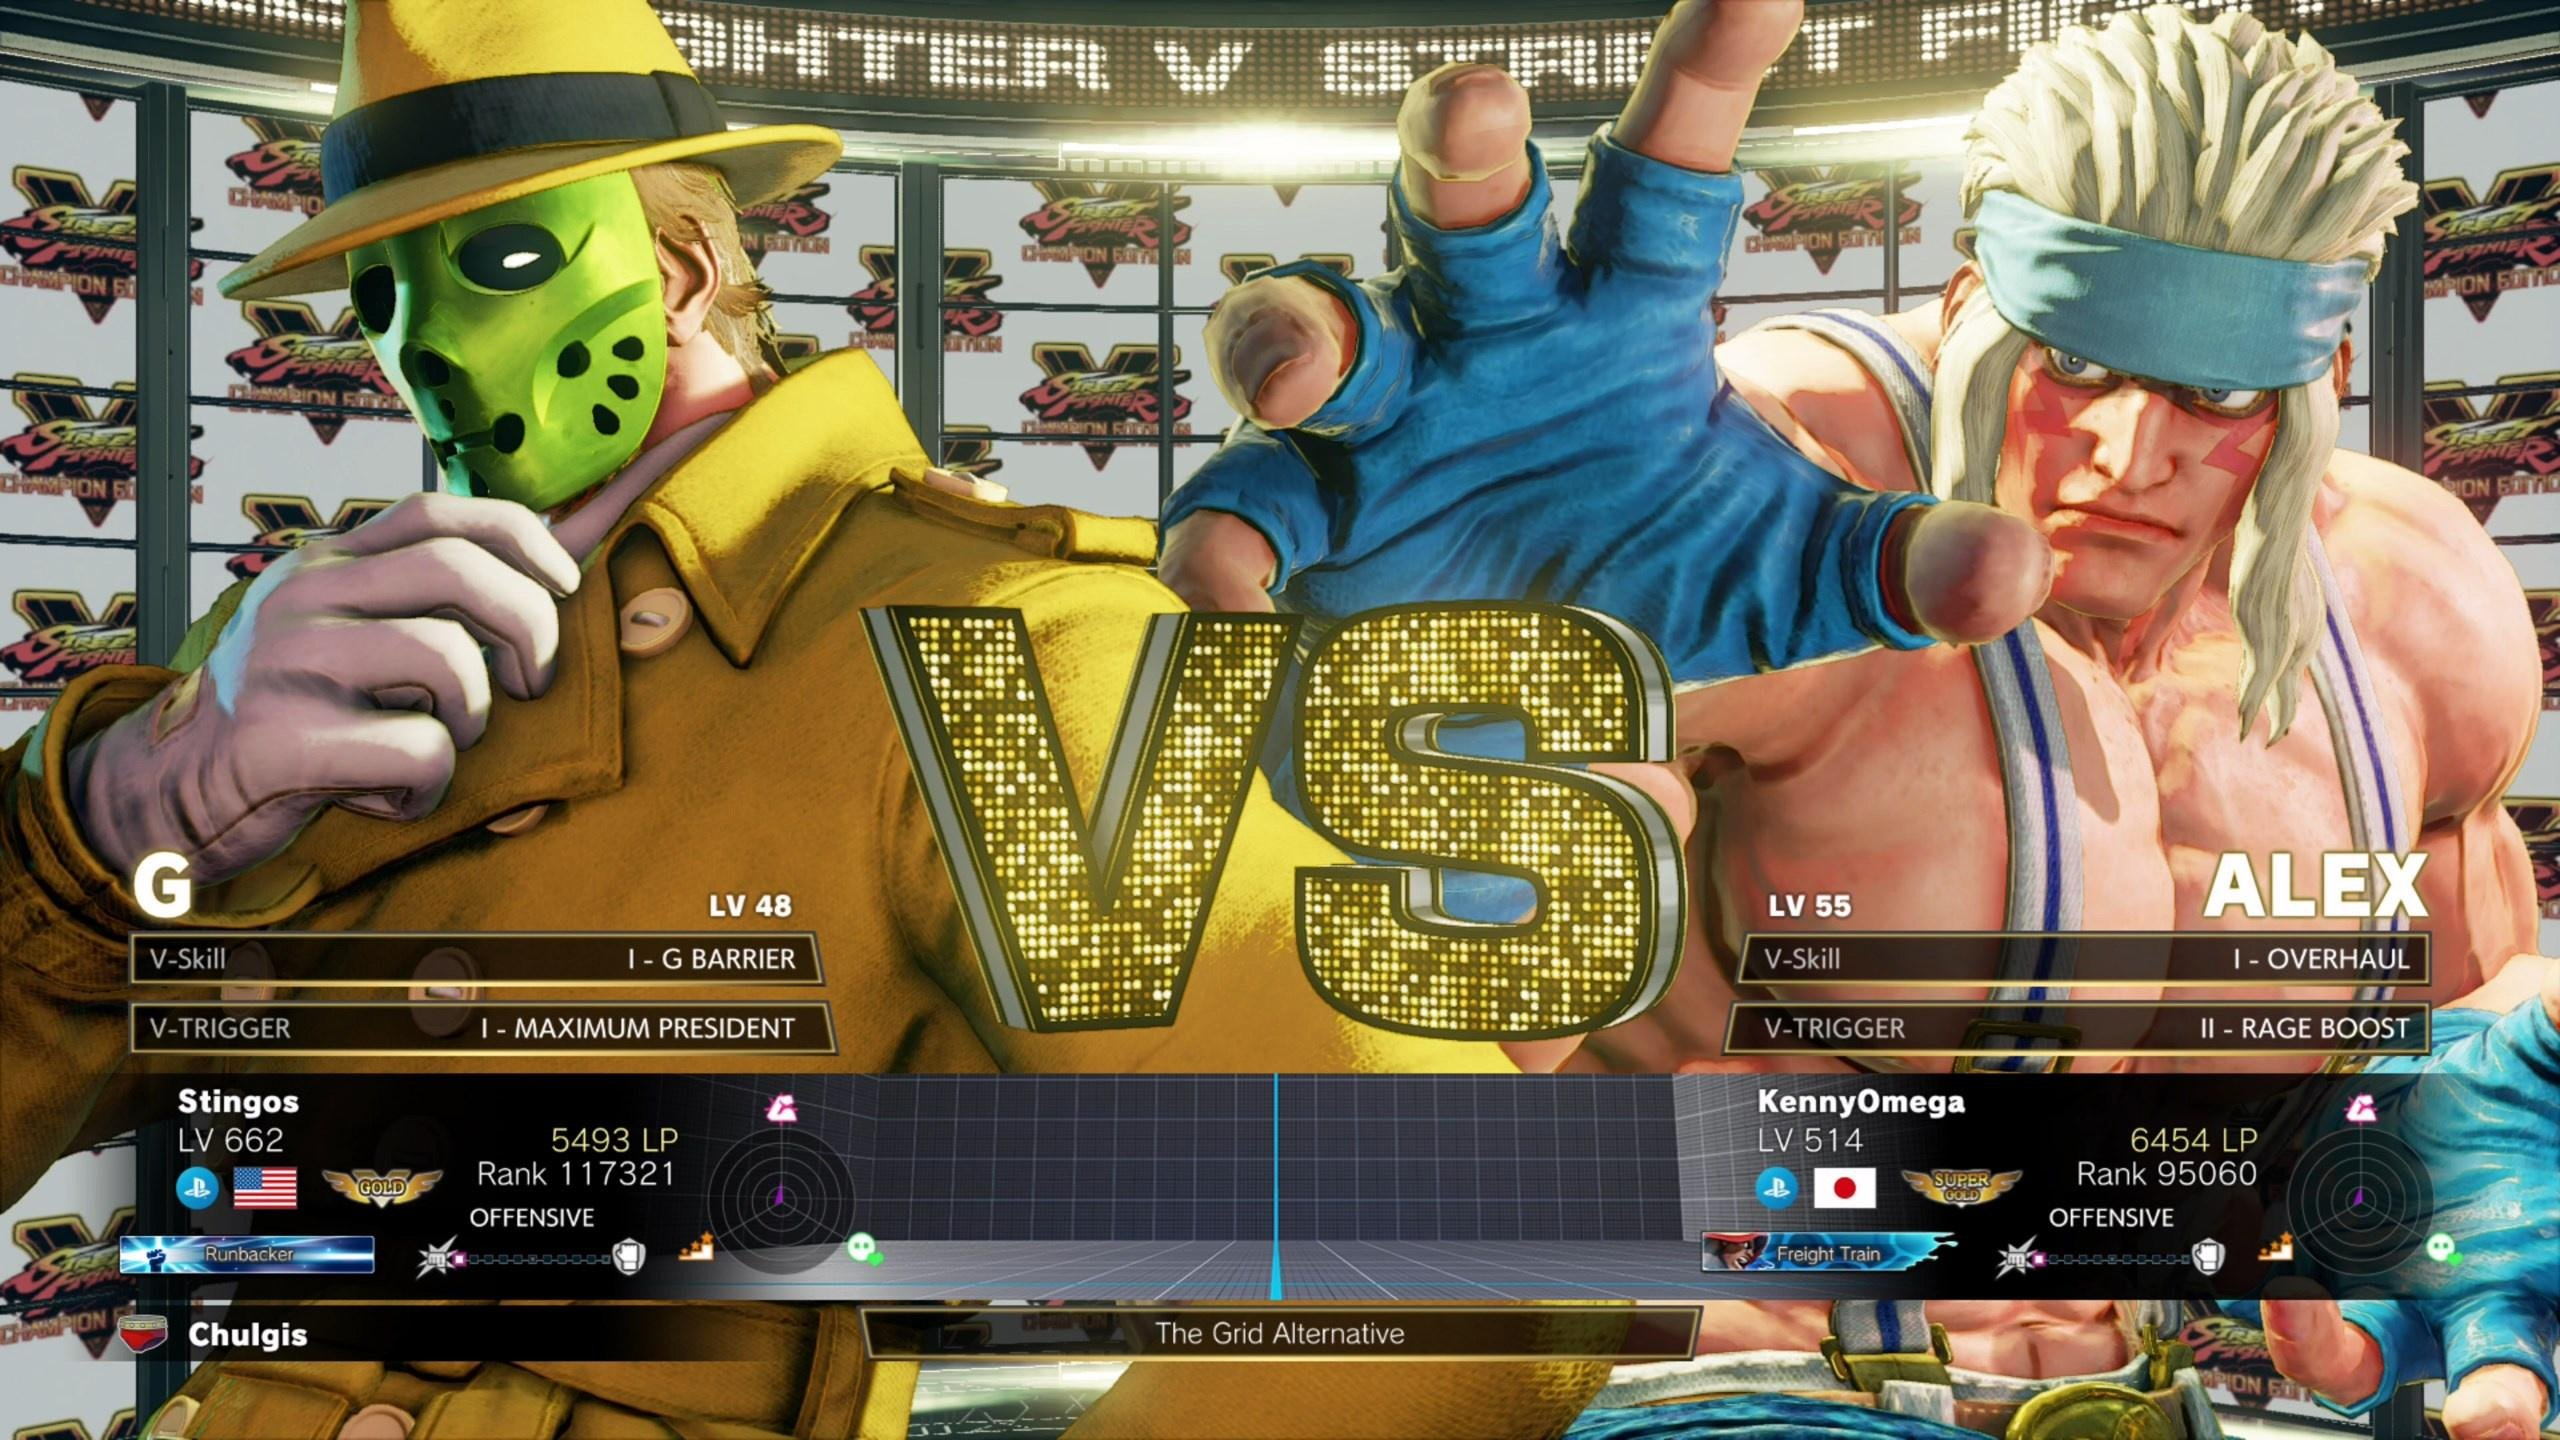 A Street Fighter V match against Kenny Omega playing as Alex.